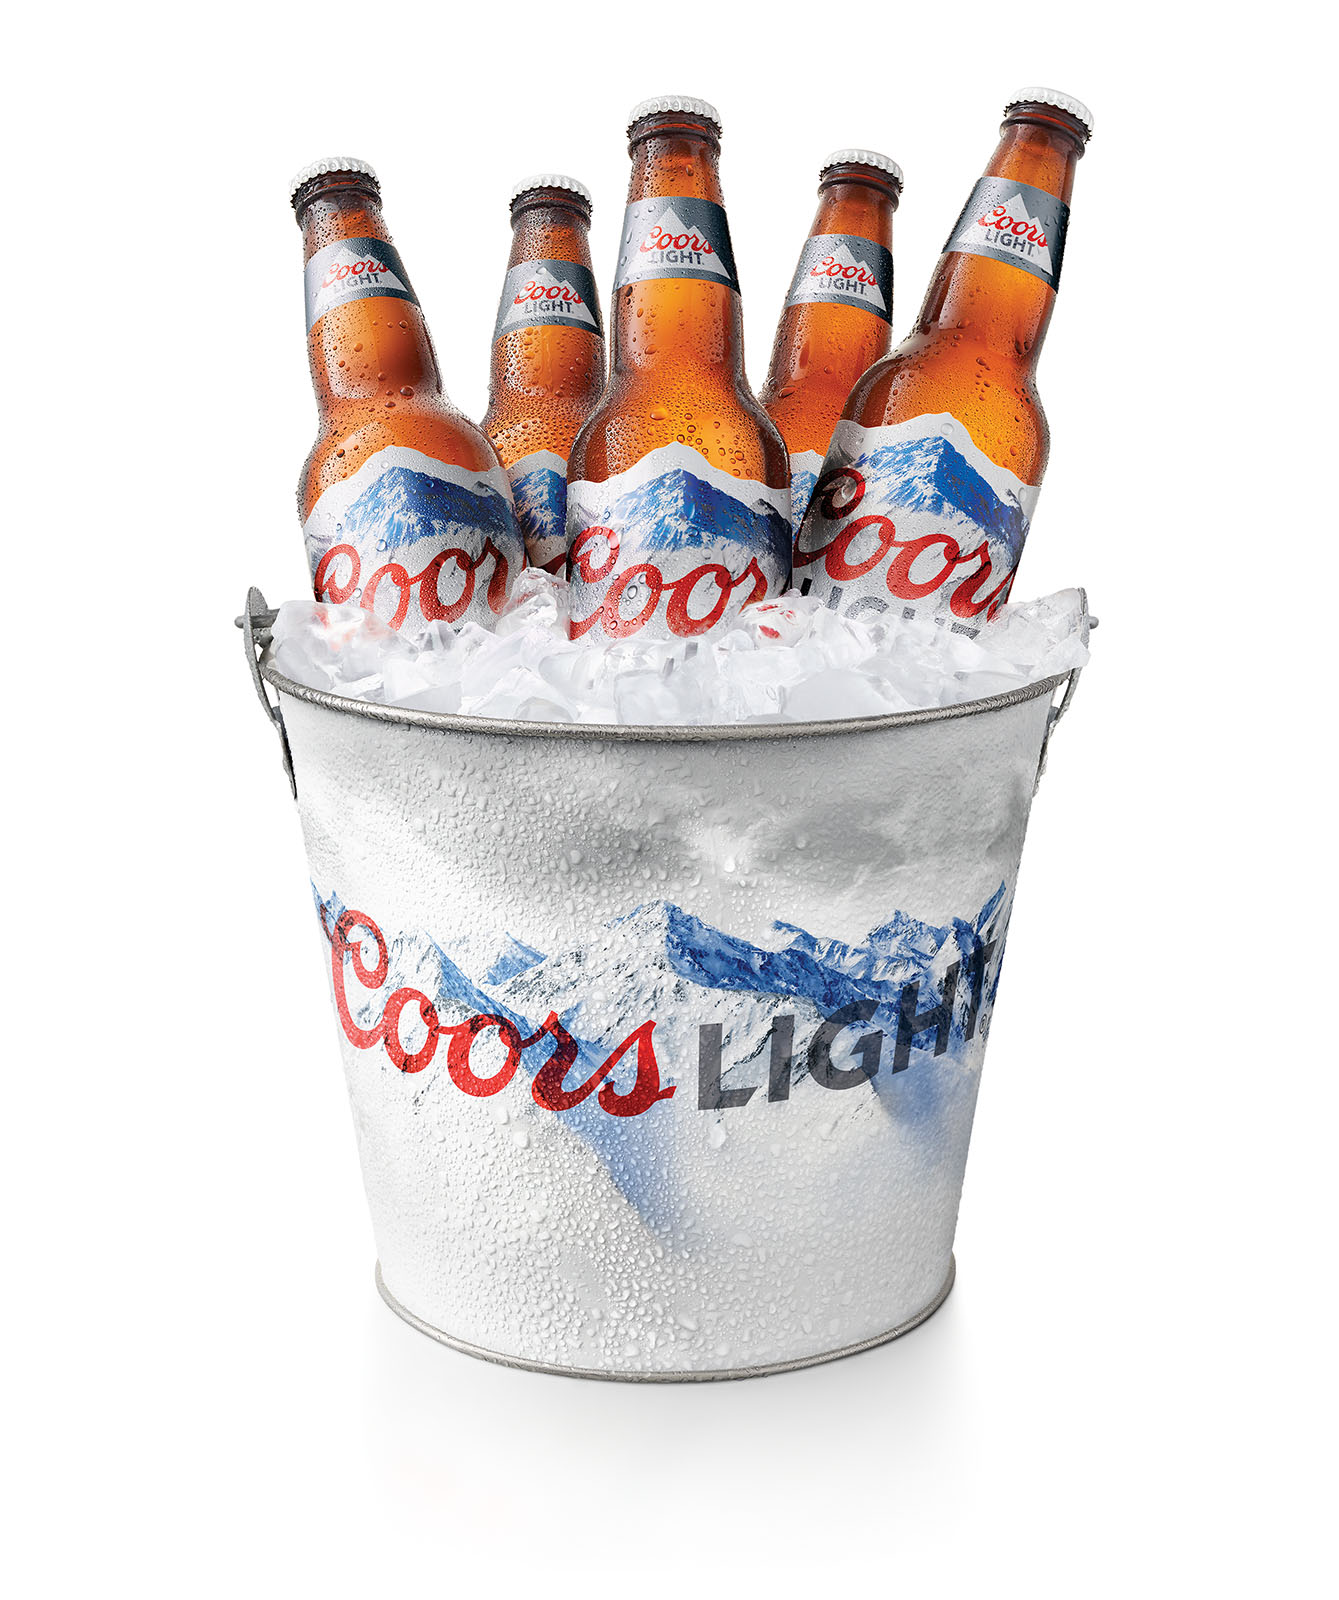 Coors Light Bucket